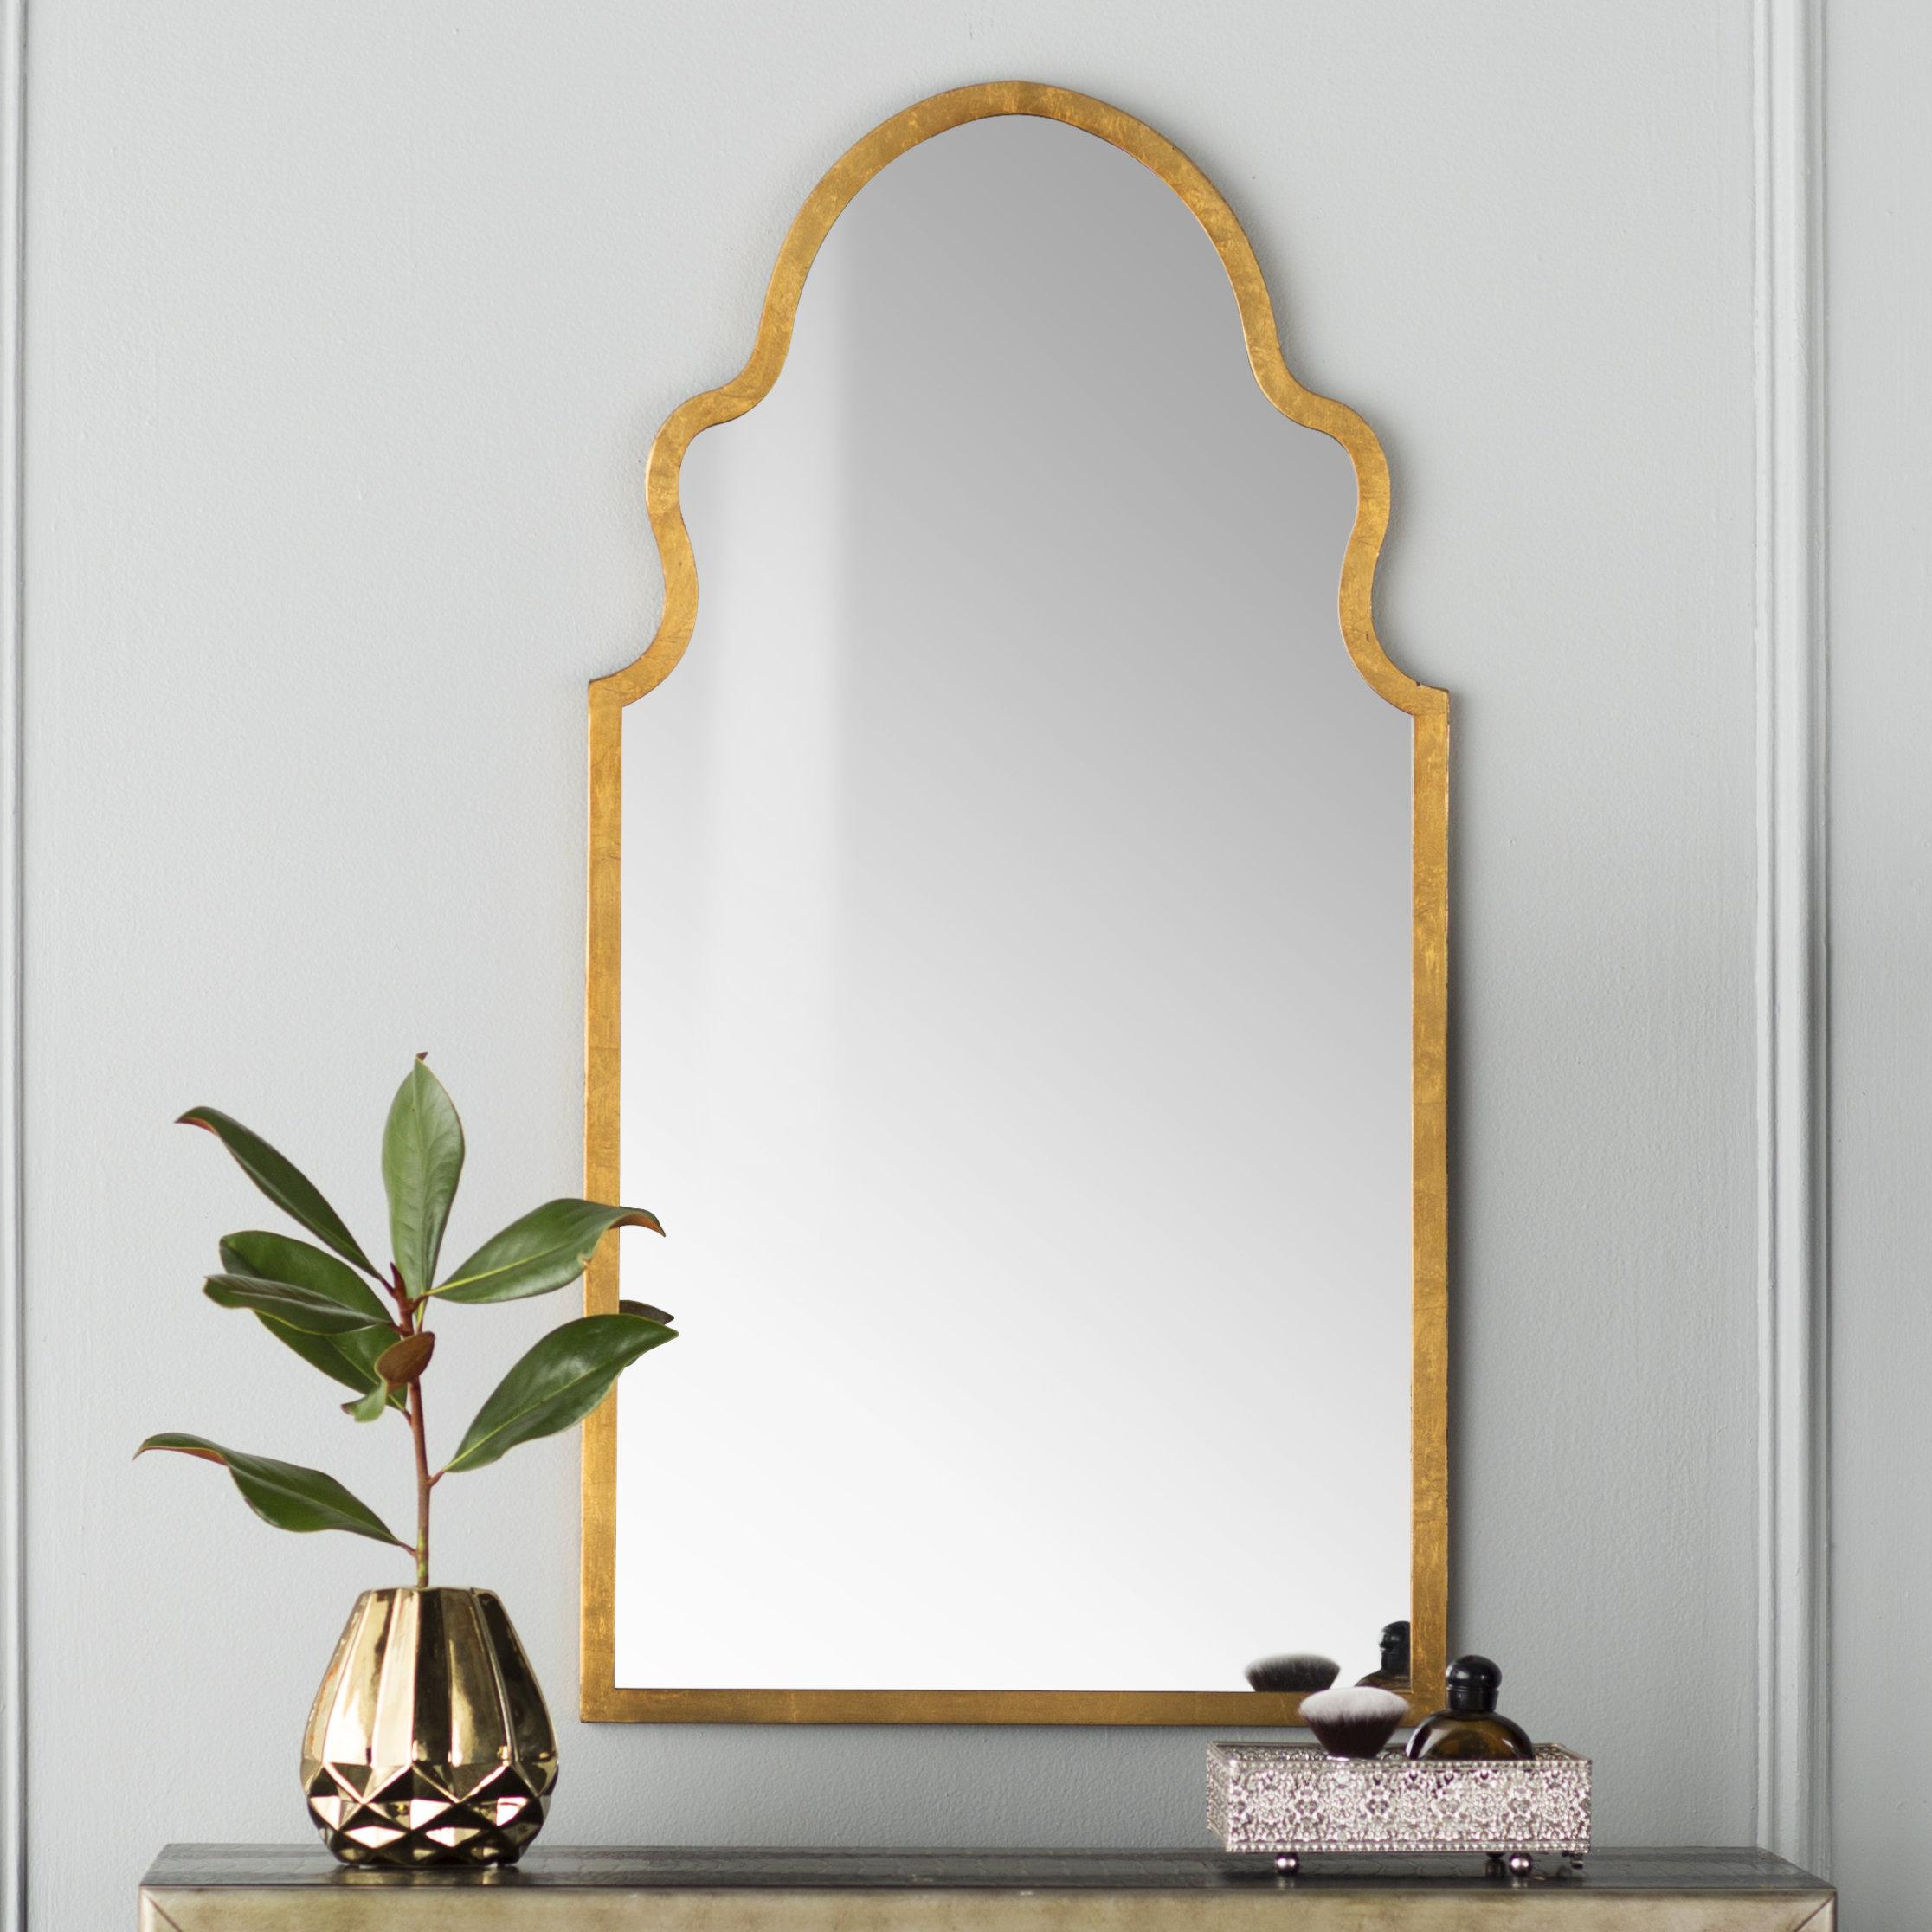 Modern Arch / Crowned Top Wall Mirrors | Allmodern Regarding Ekaterina Arch/crowned Top Wall Mirrors (View 16 of 30)